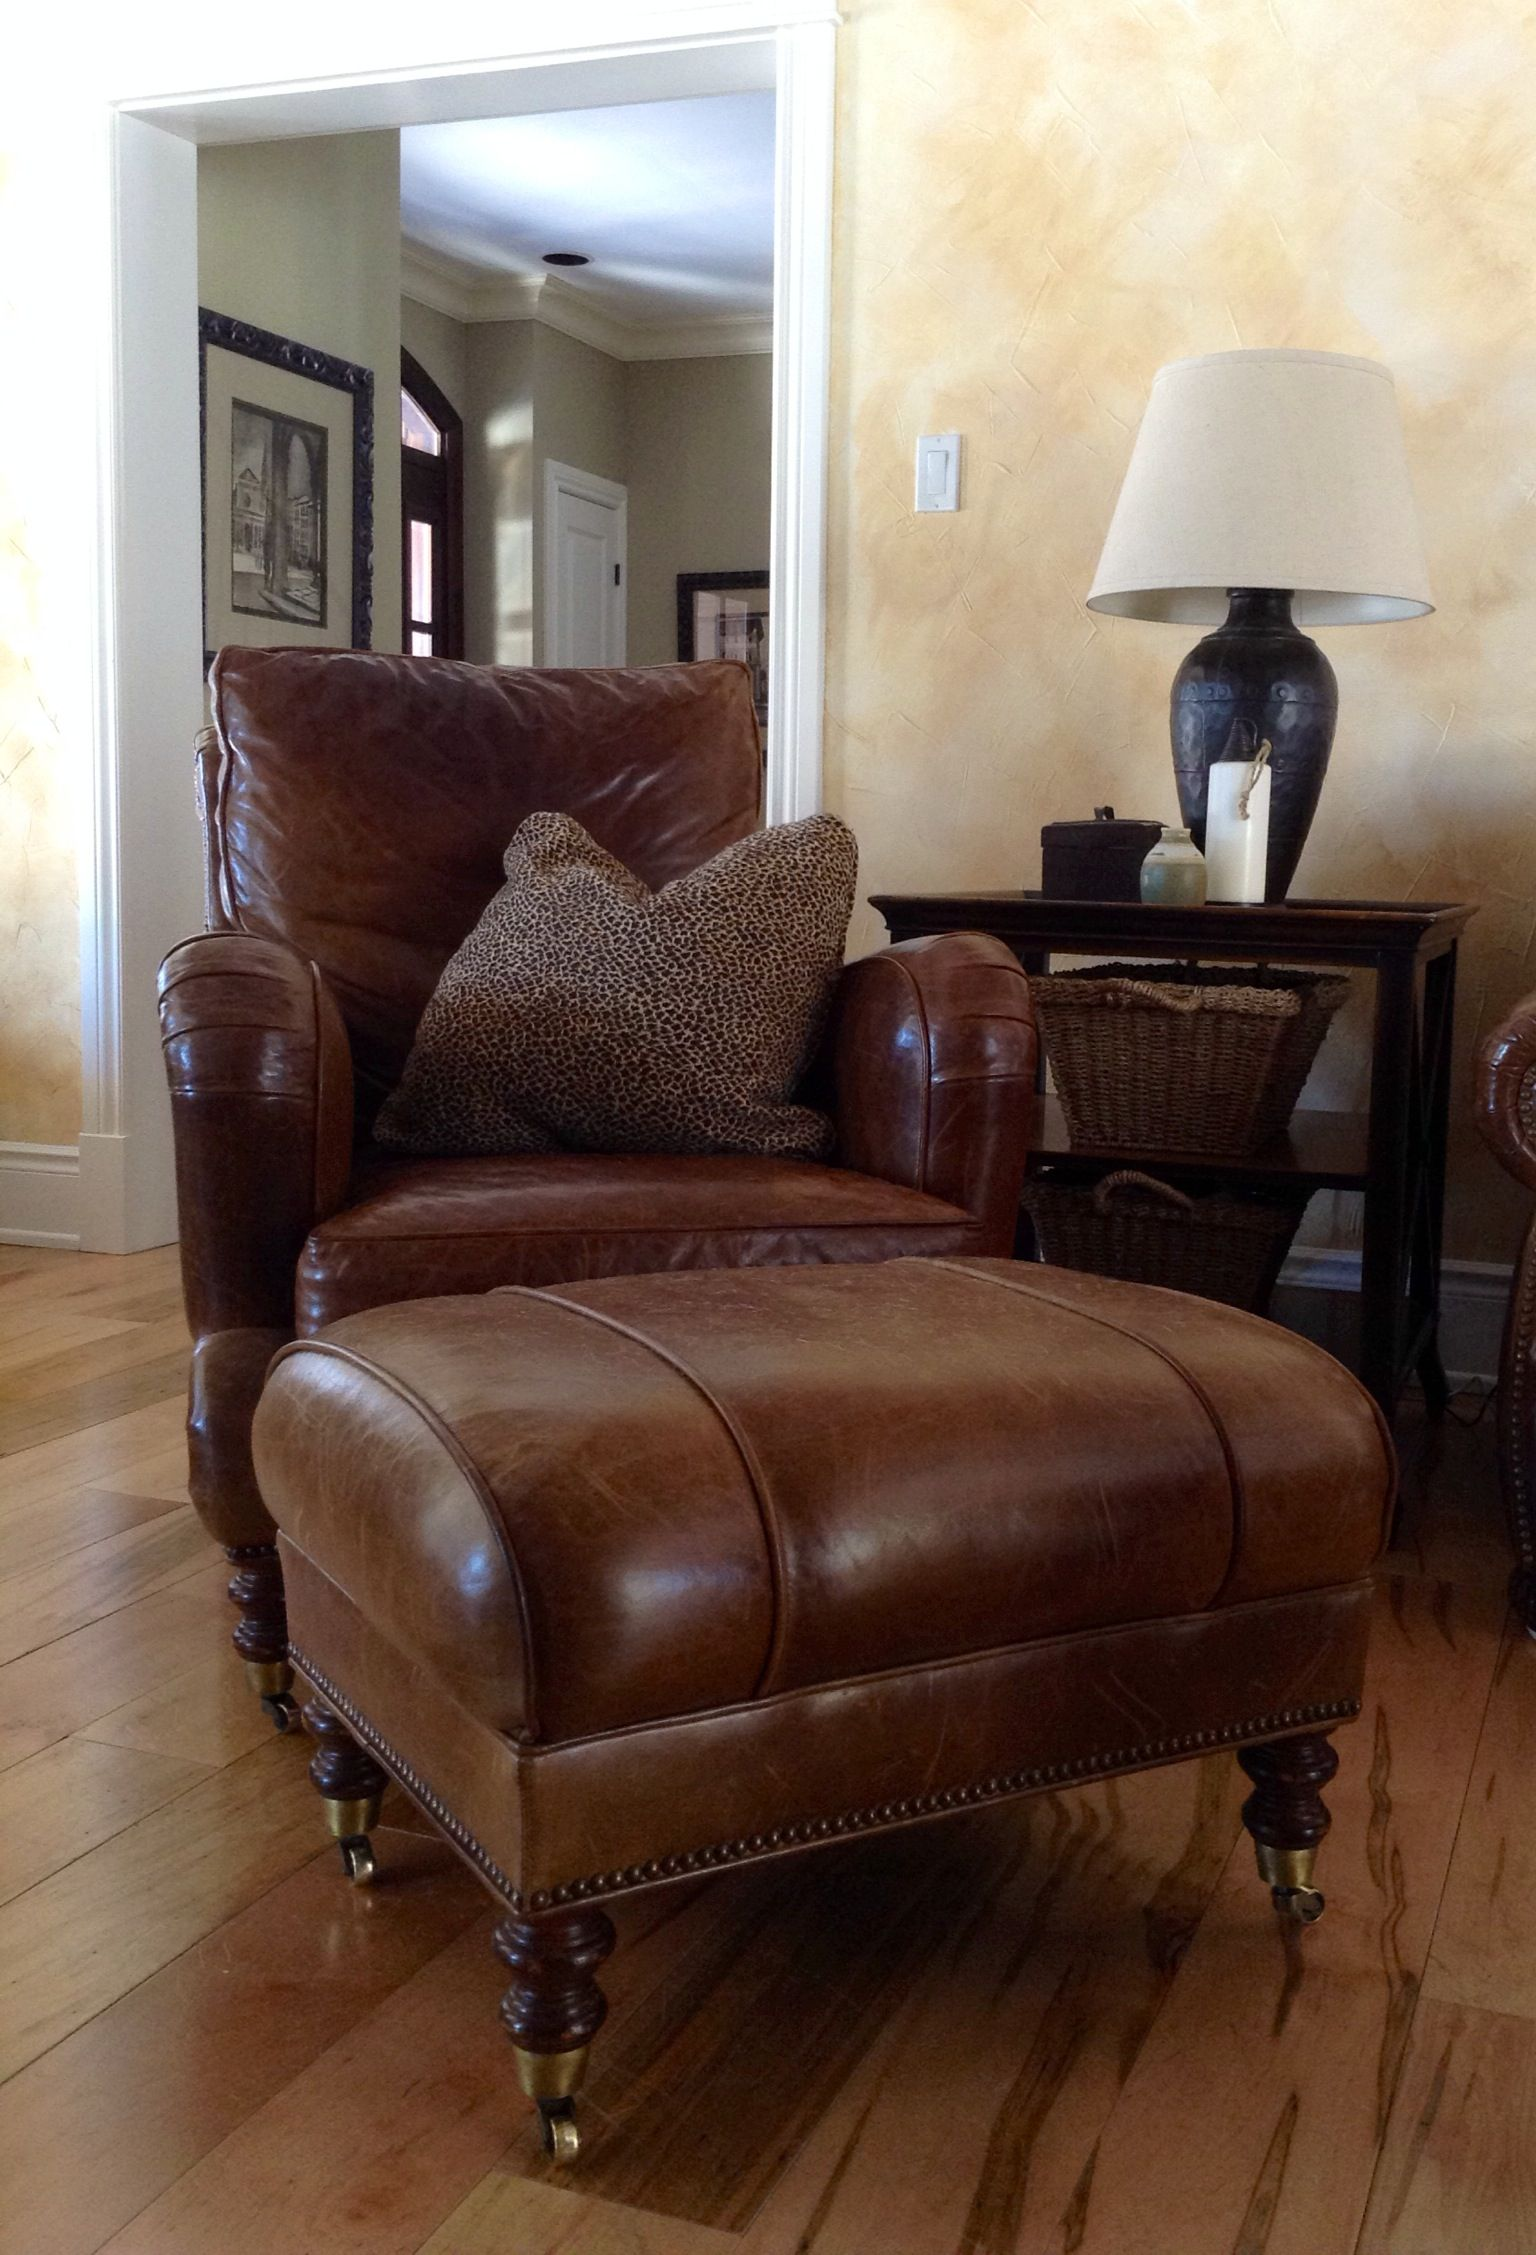 Distressed leather club chair and ottoman favorite spot to